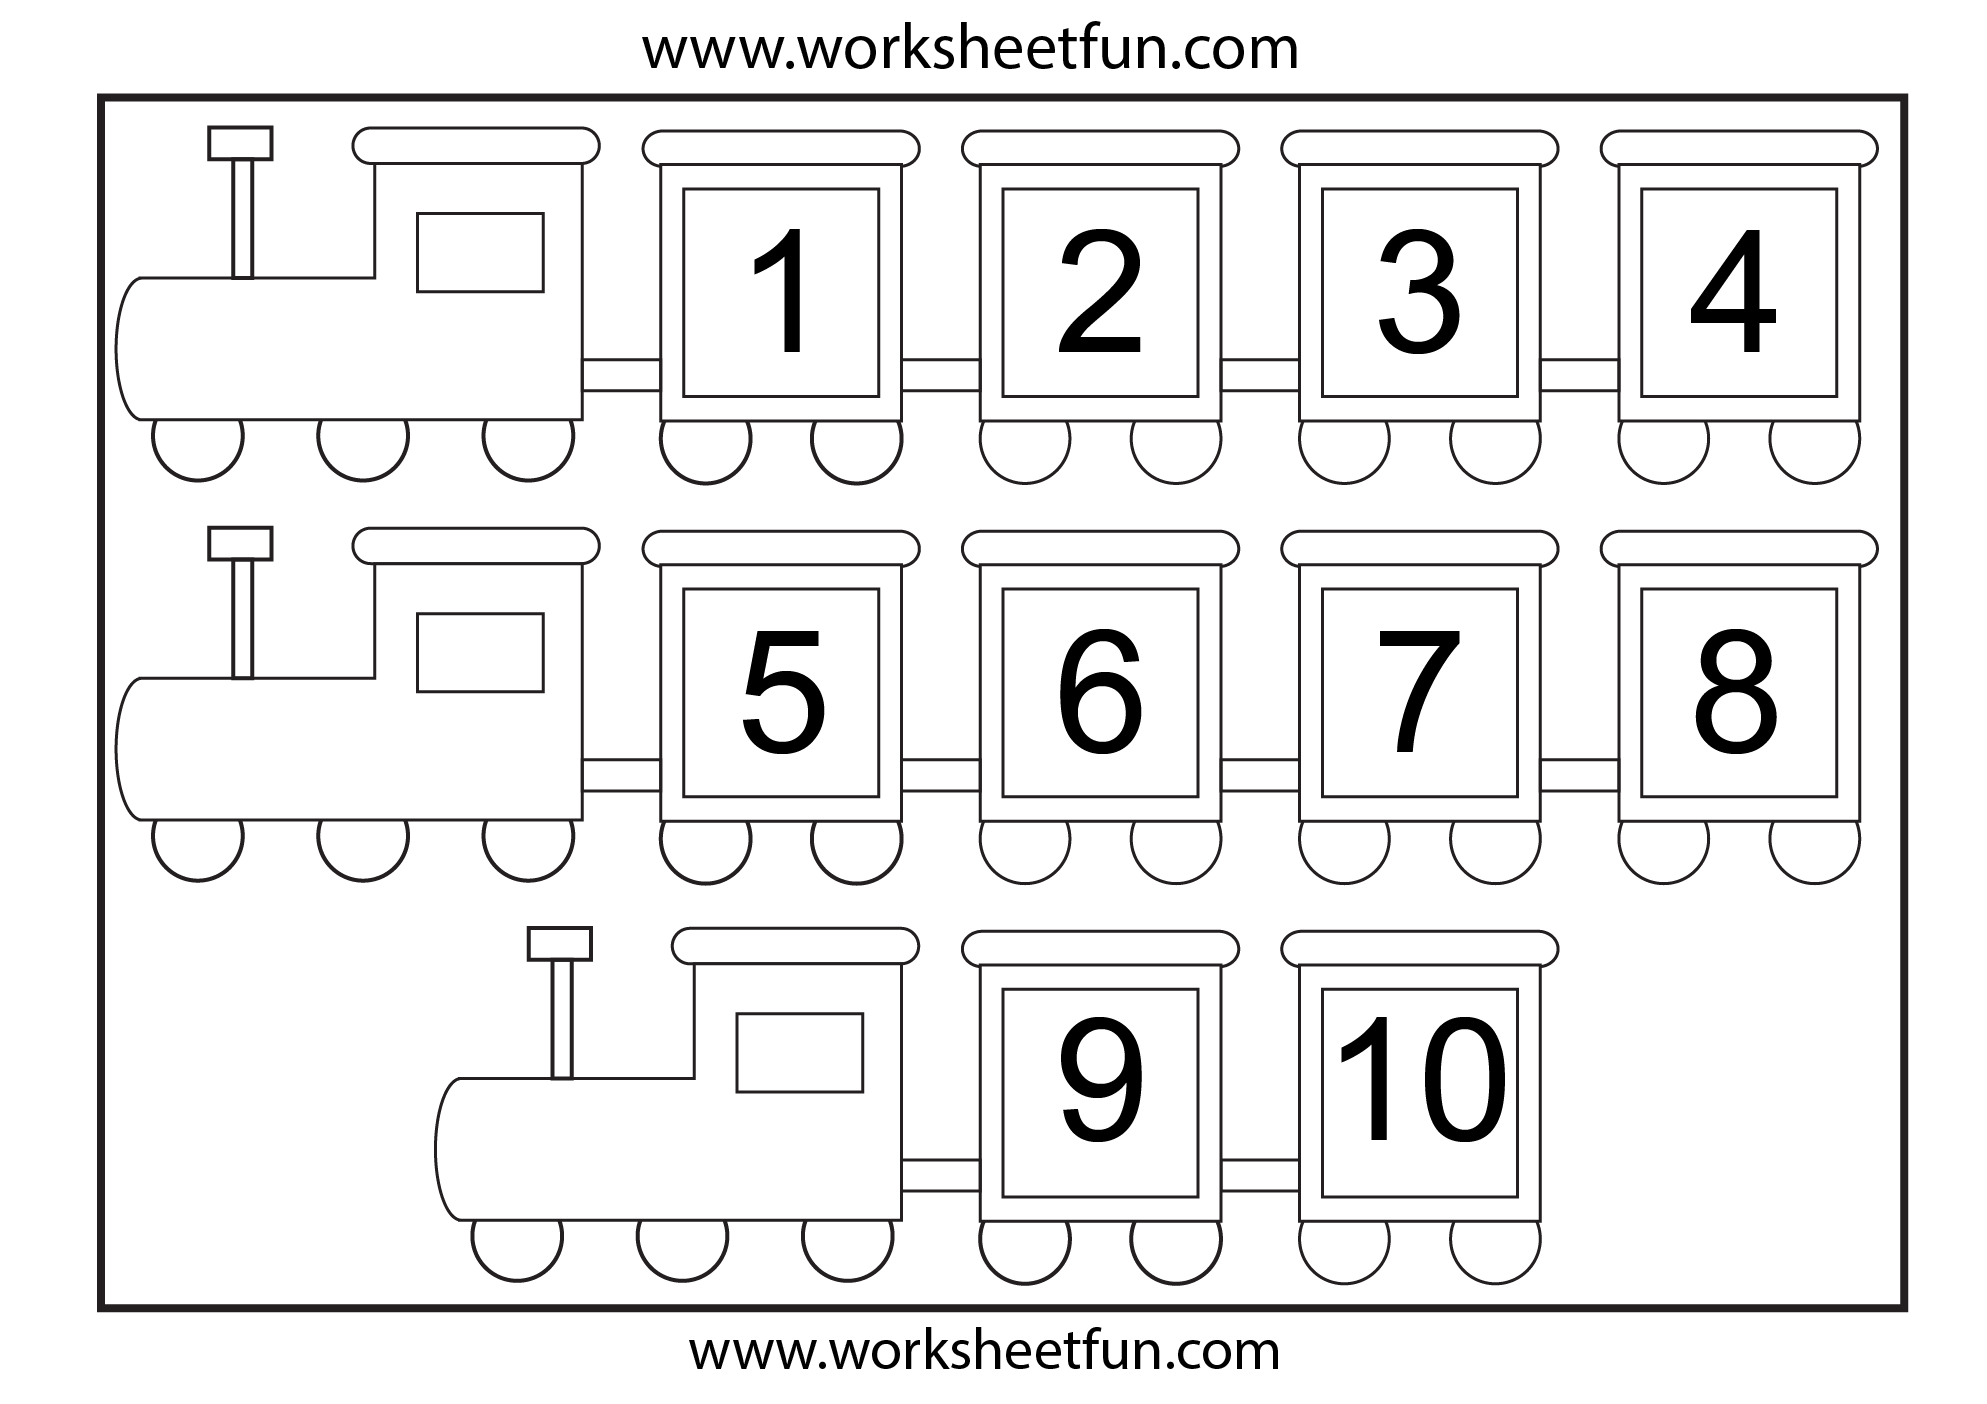 missing number worksheet: NEW 684 MISSING NUMBER